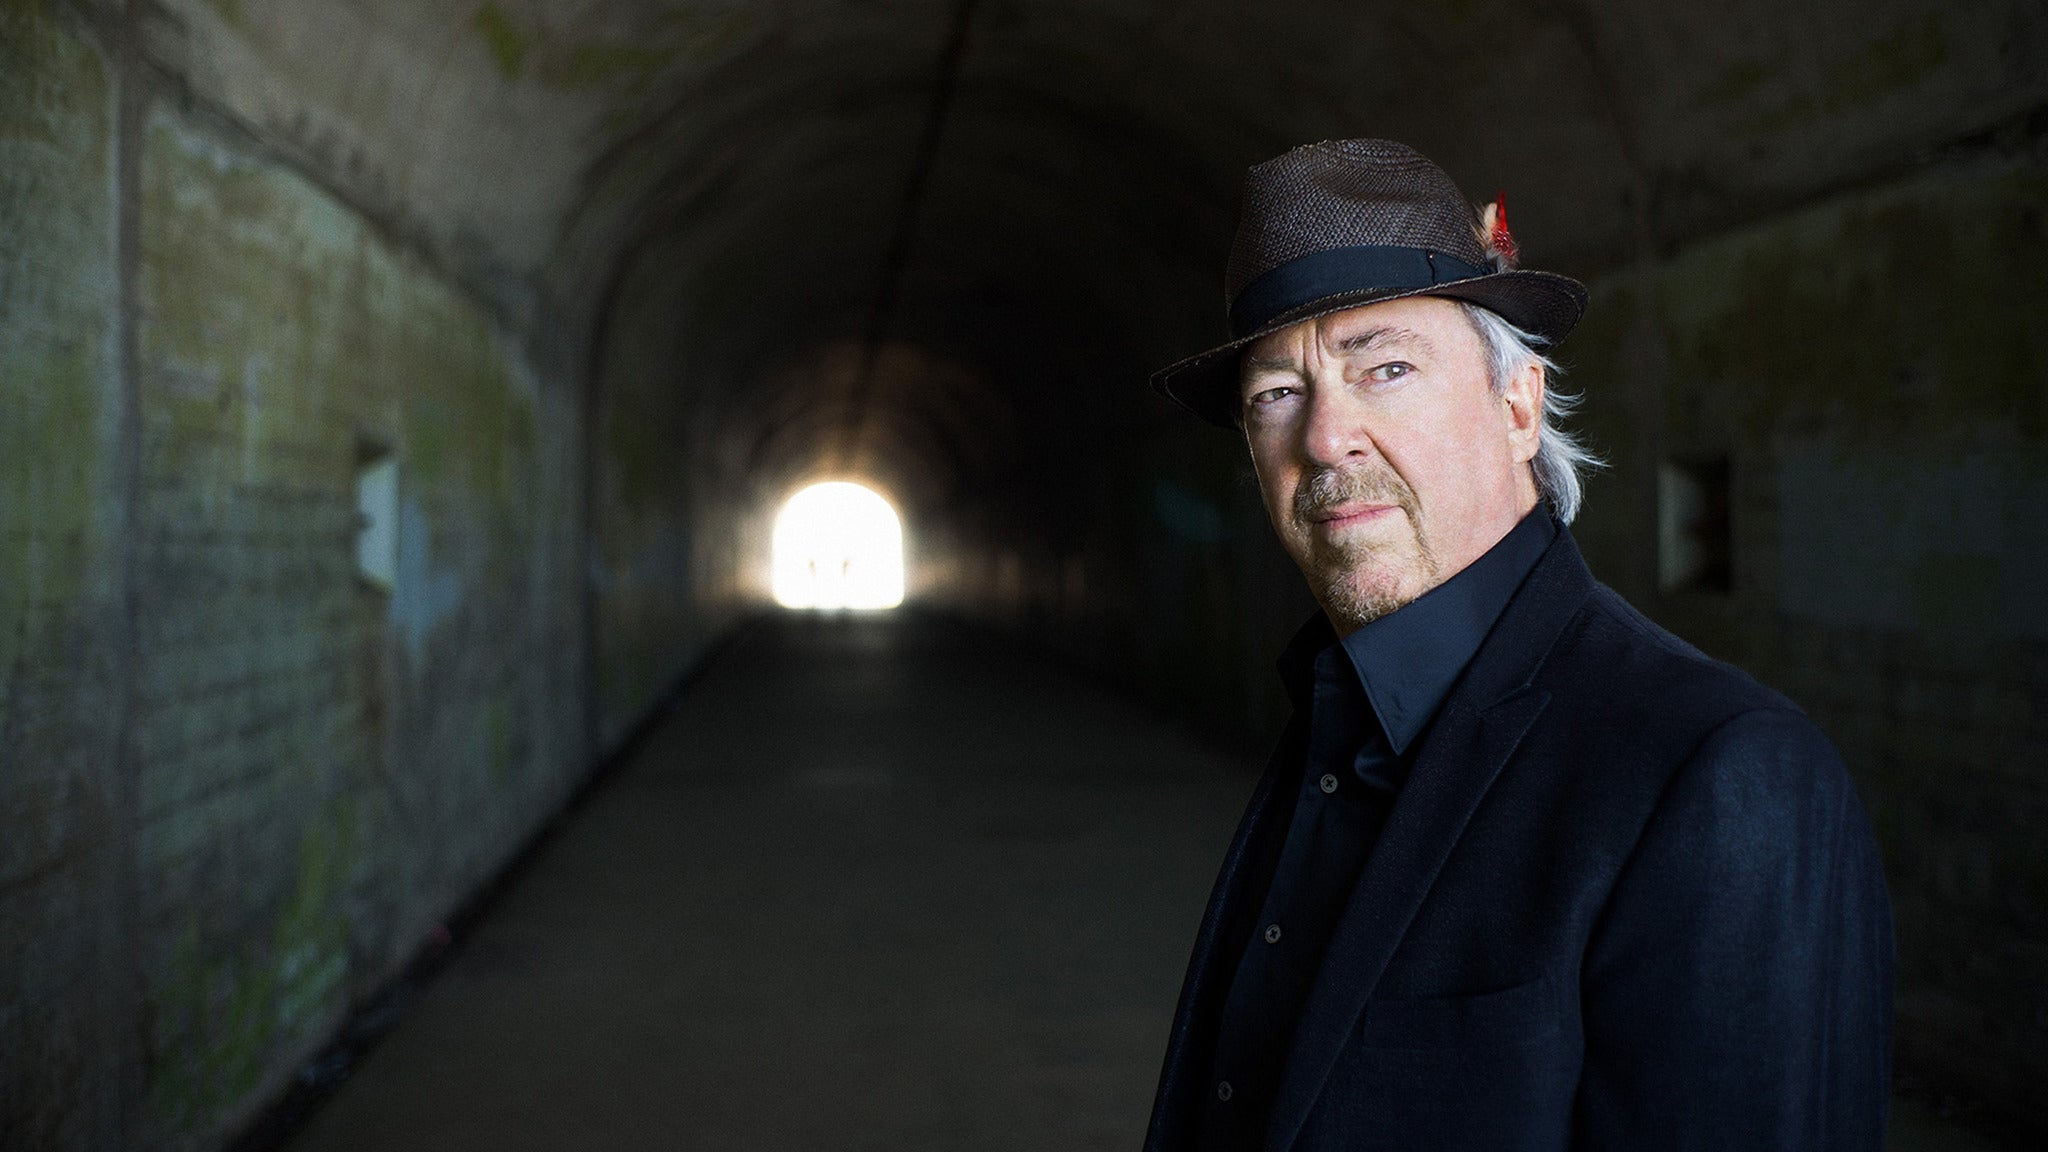 Boz Scaggs & Aaron Neville at Wente Vineyards